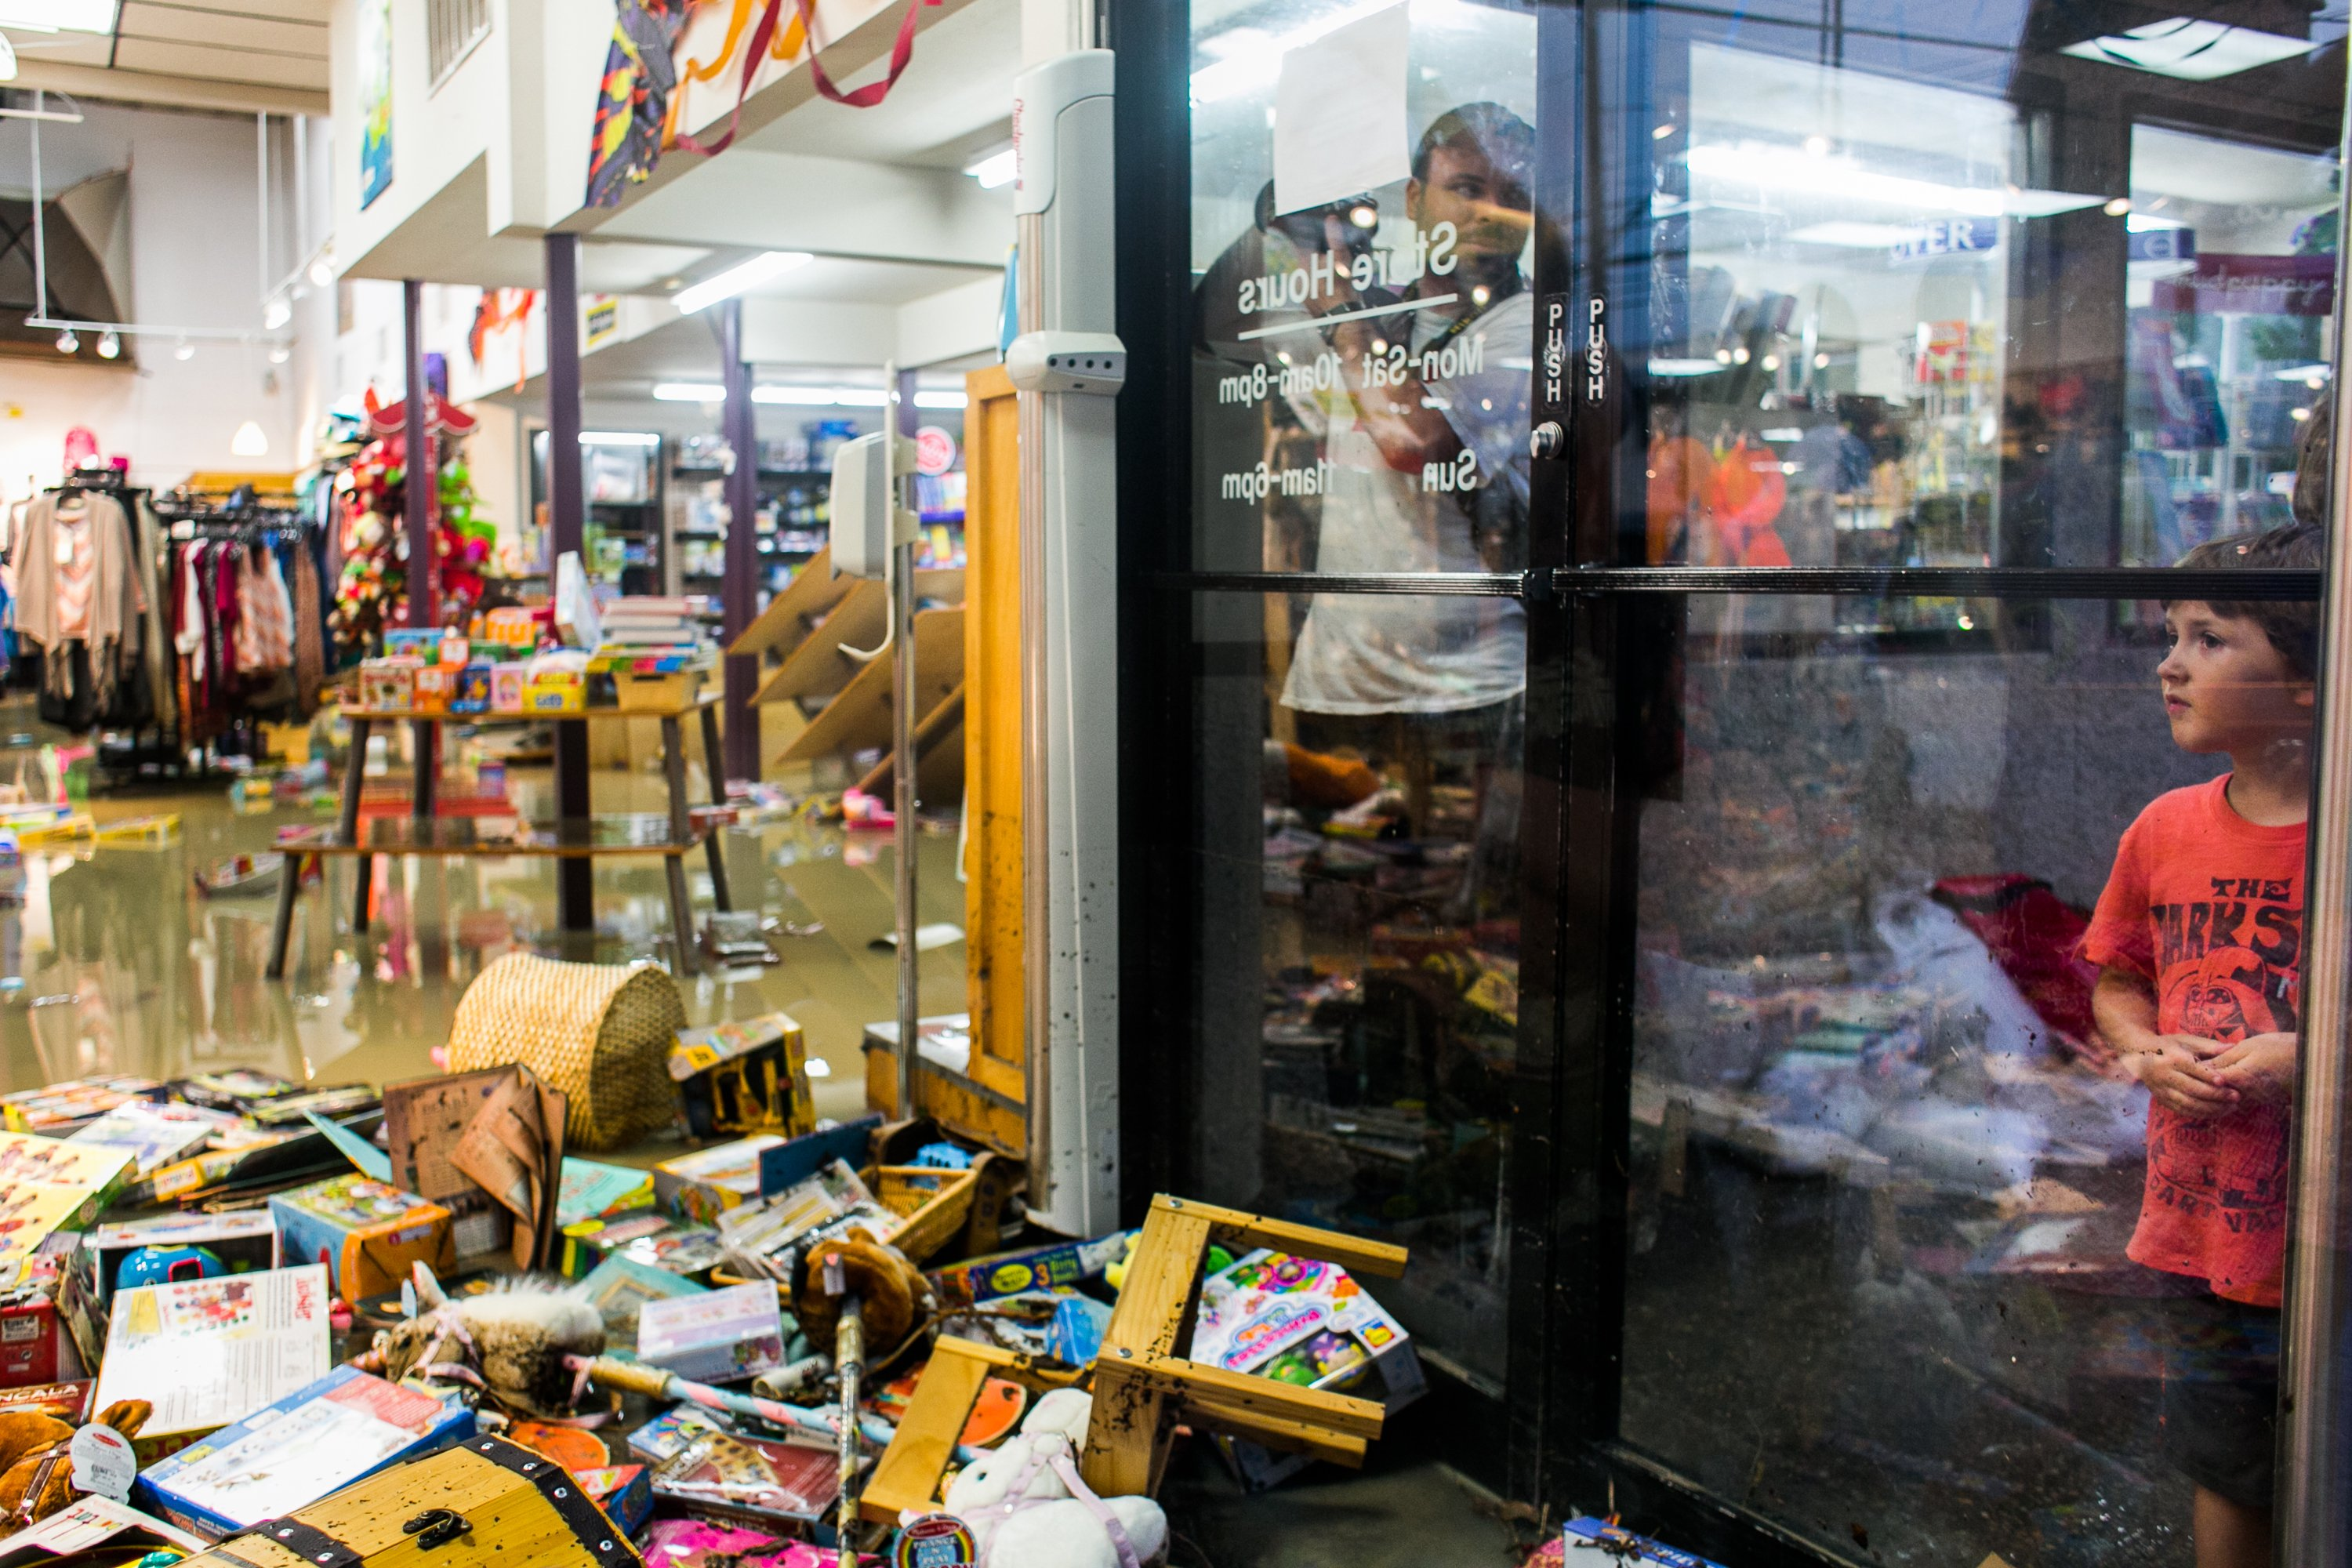 Lucas Rivas looks into the flooded Whole Earth Provisions Company after days of heavy rain in Austin on May 25, 2015.